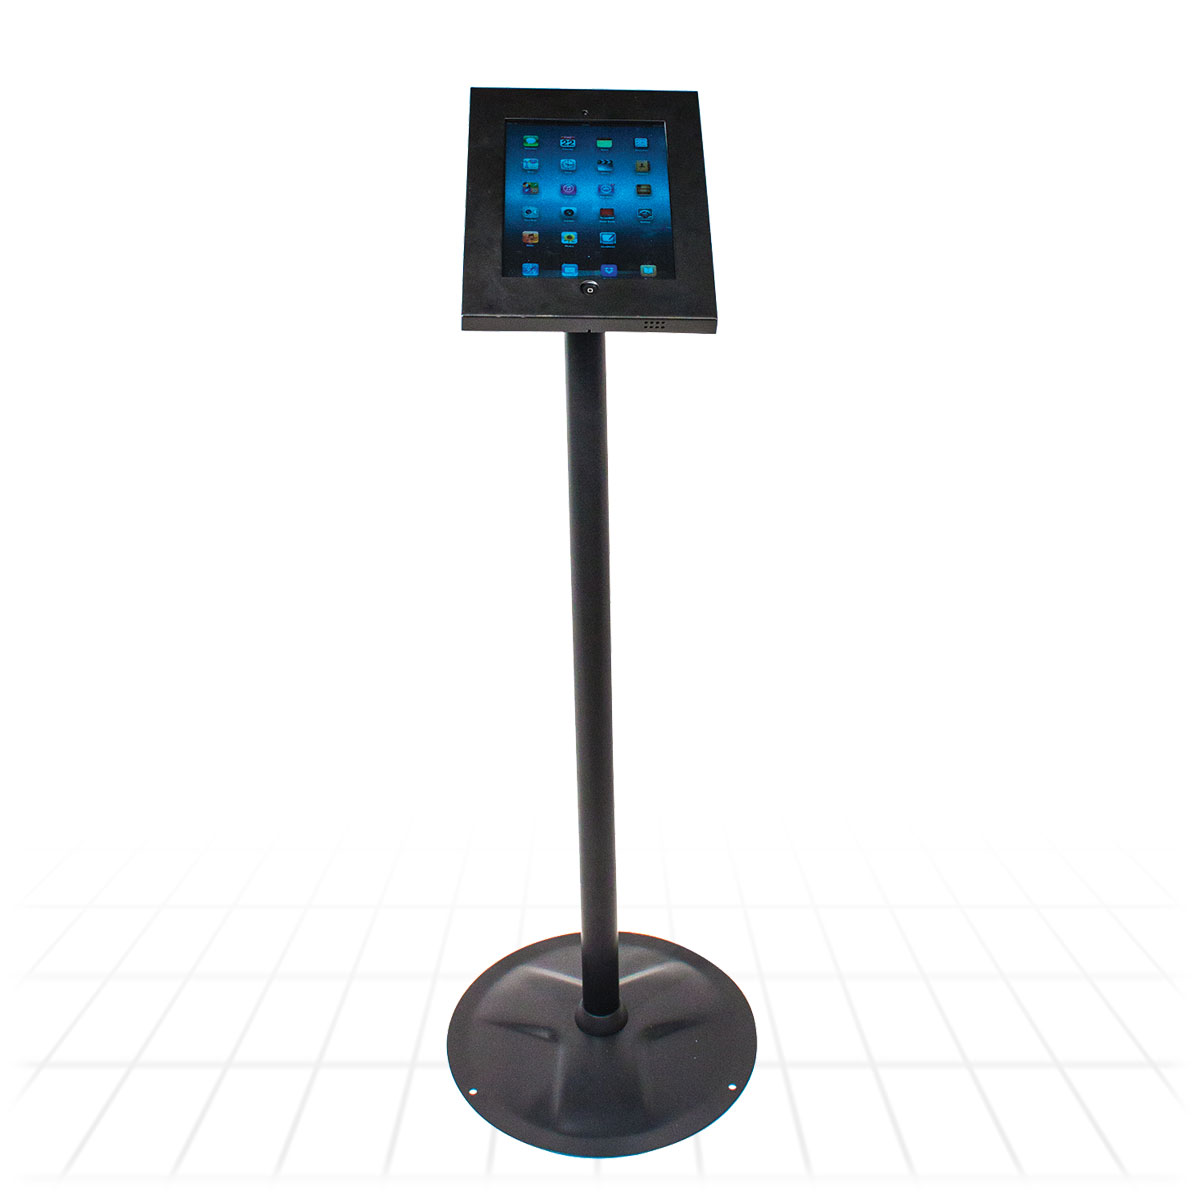 Budget Ipad Display Stand Tablet Display Stands